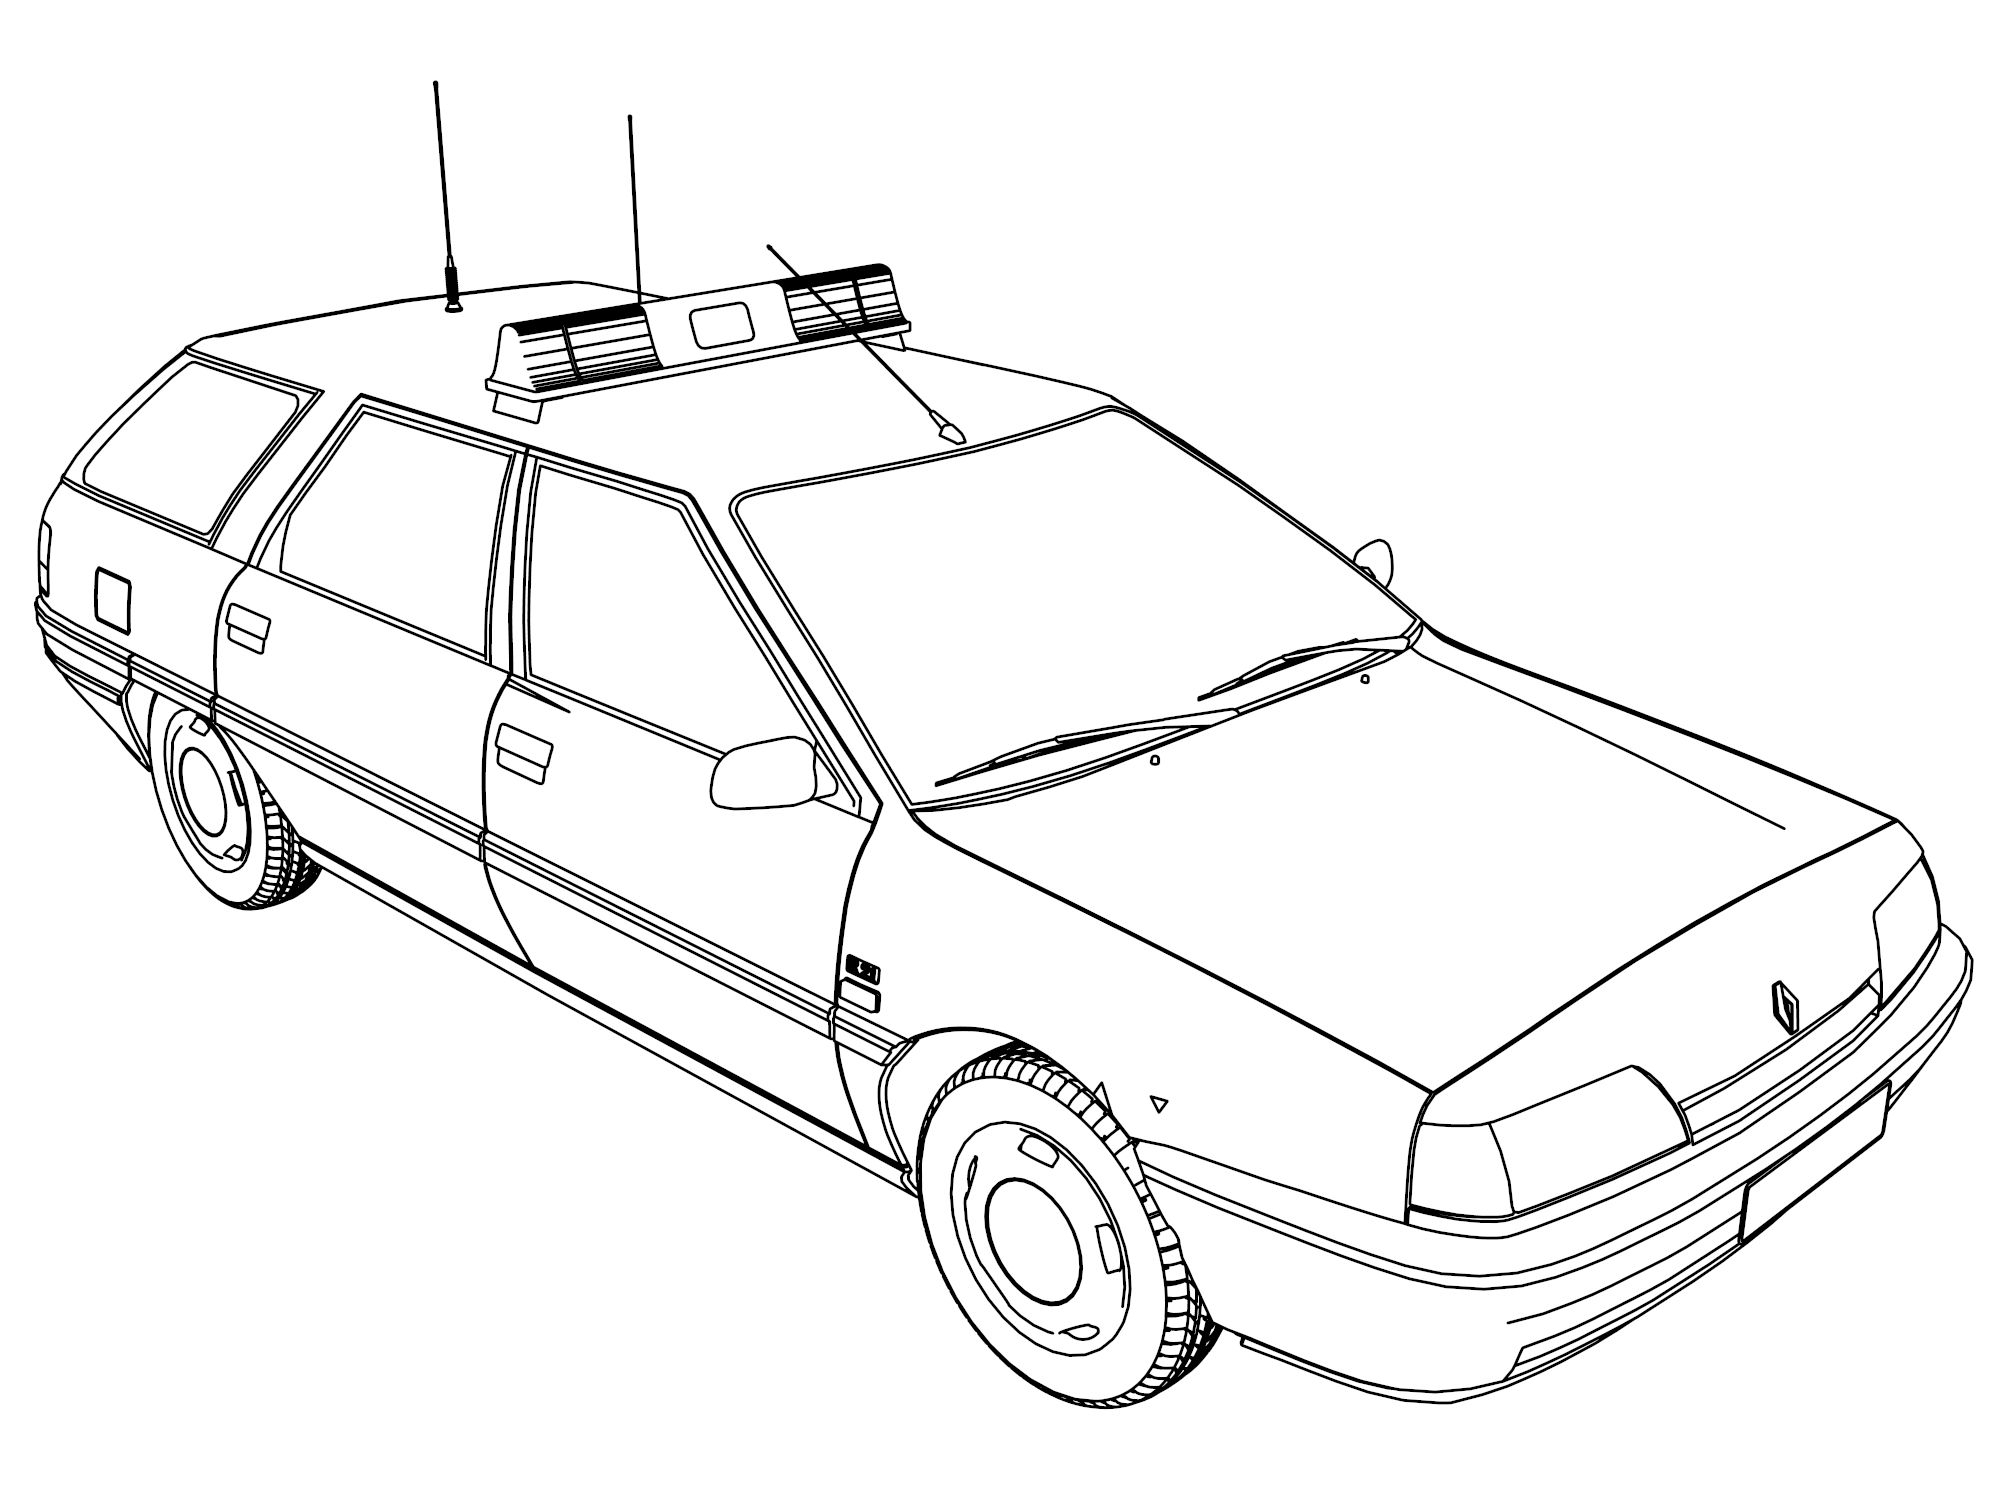 2000x1500 Fashionable Idea Police Car Coloring Page Small For Kids